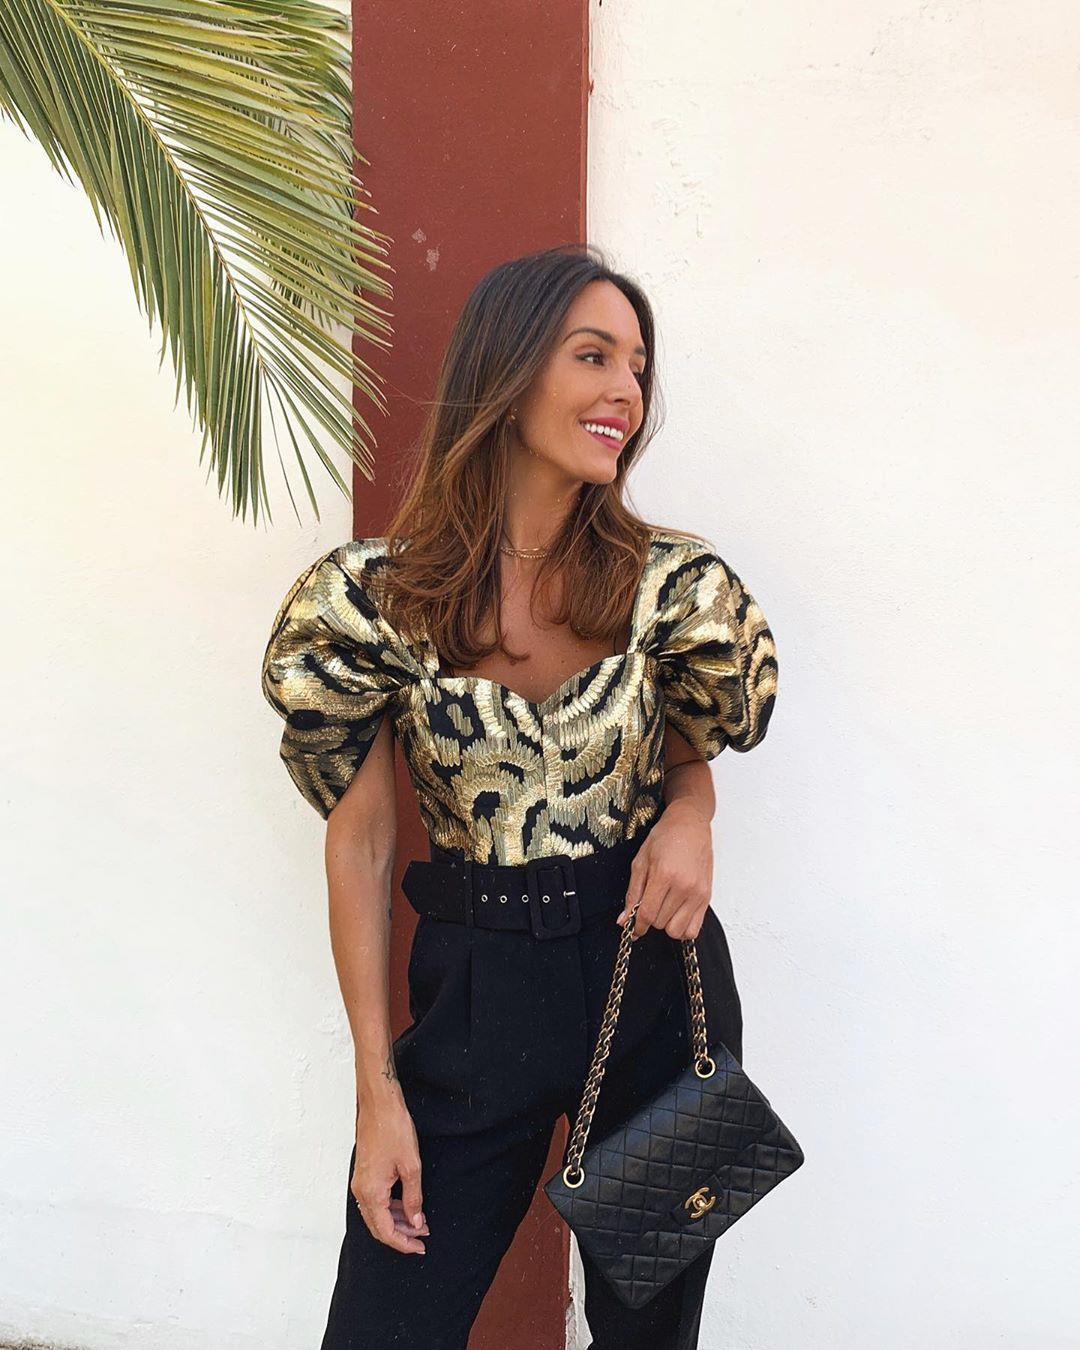 mejores-looks-influencers-instagram-rocio-osorno-zara-chanel